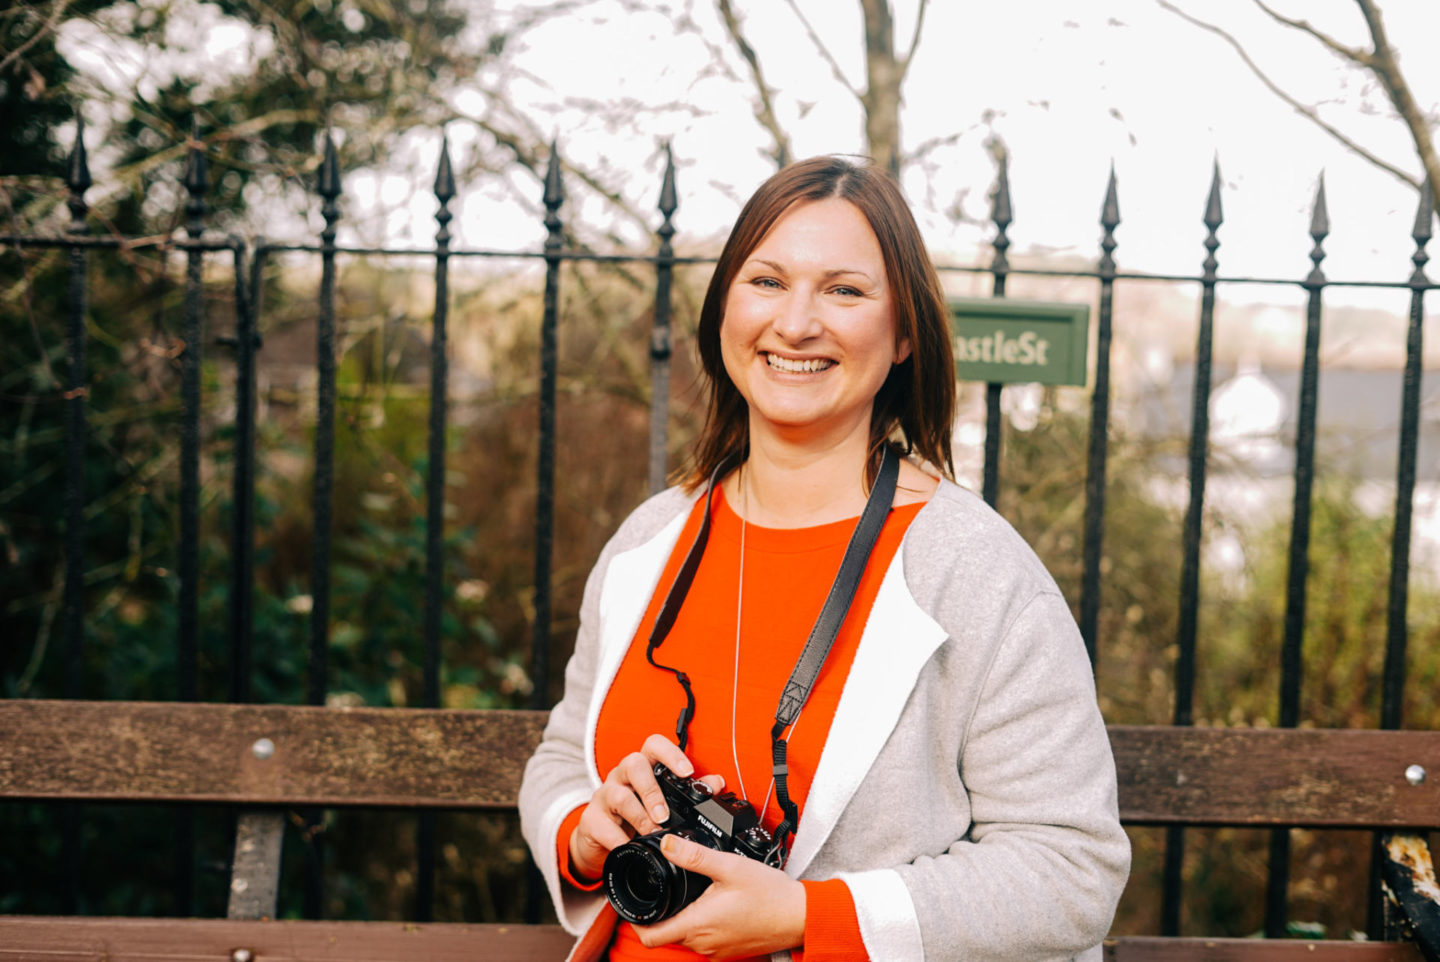 Claire Hall, founder of Travel Influence and award winning travel blogger, holding camera